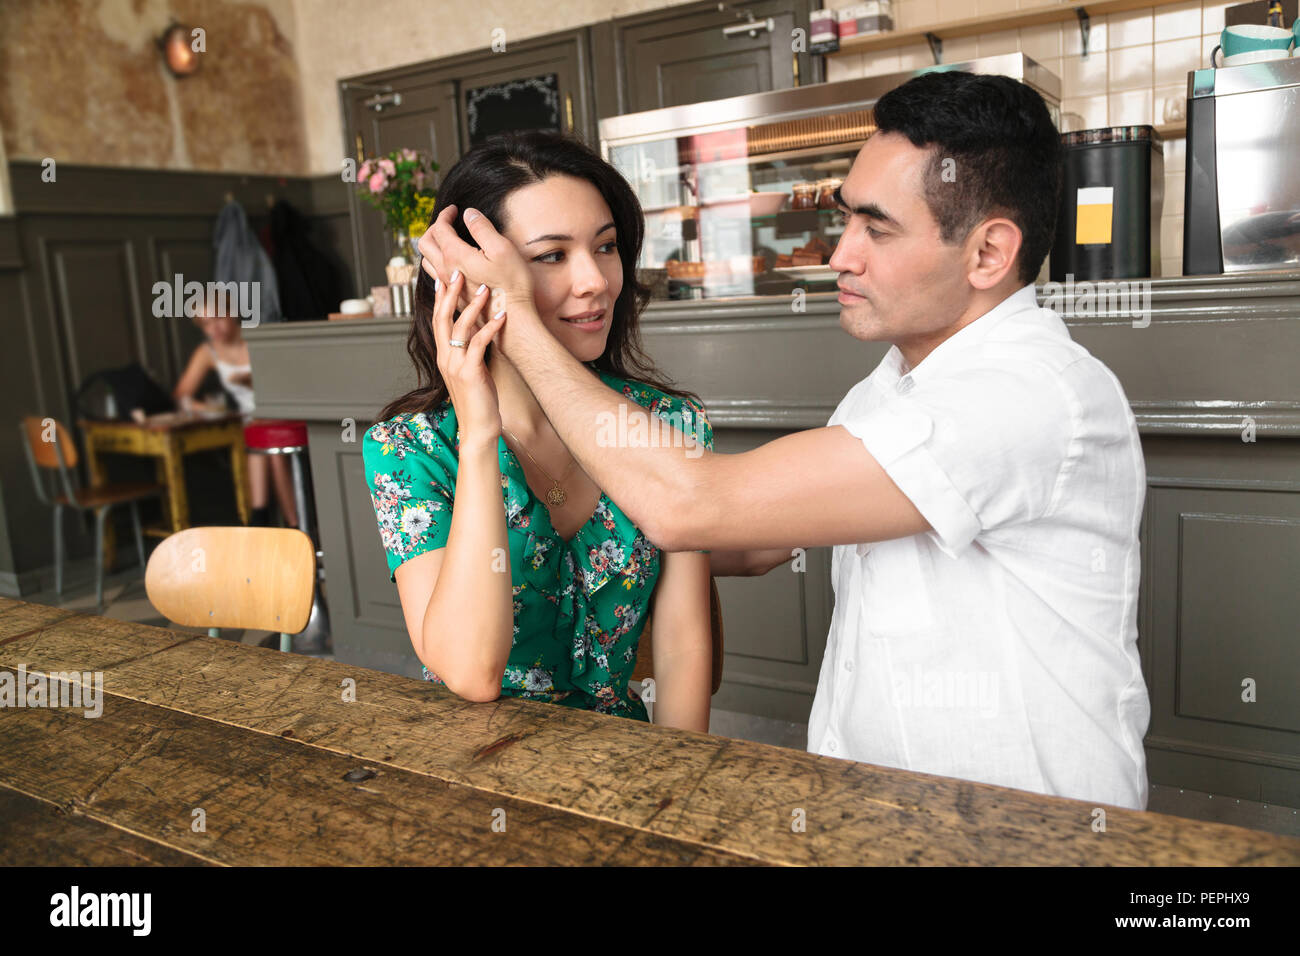 Man hugs his wife and gently touches her hair - Stock Image